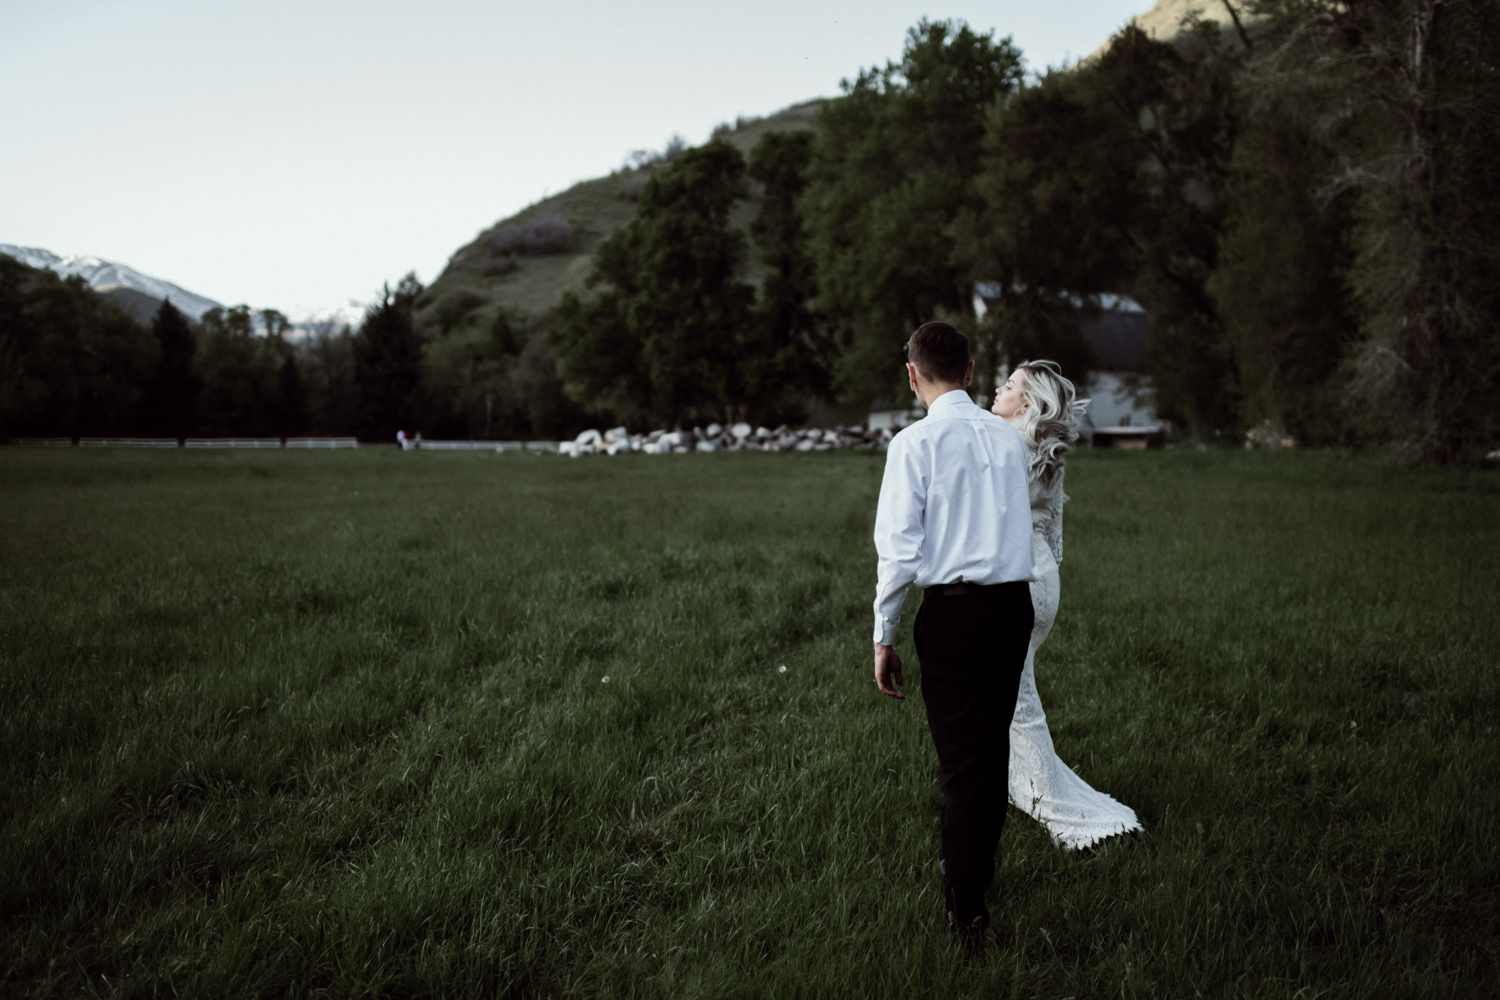 bridal couple walking in grassy field